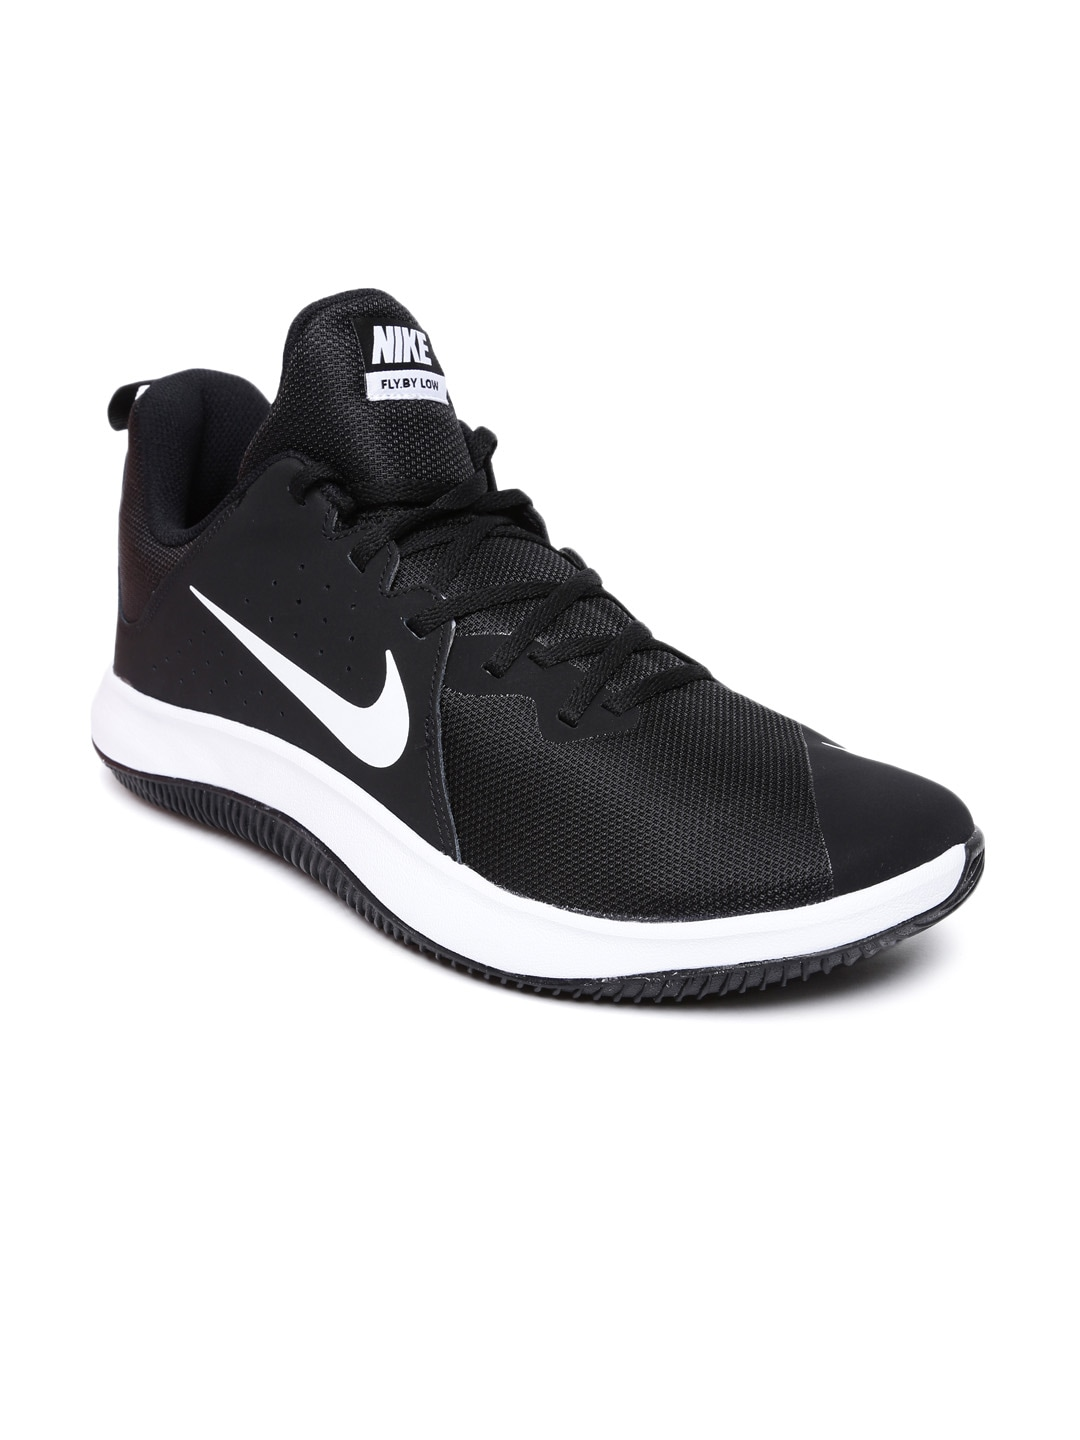 699560cfe787 Men Footwear - Buy Mens Footwear   Shoes Online in India - Myntra